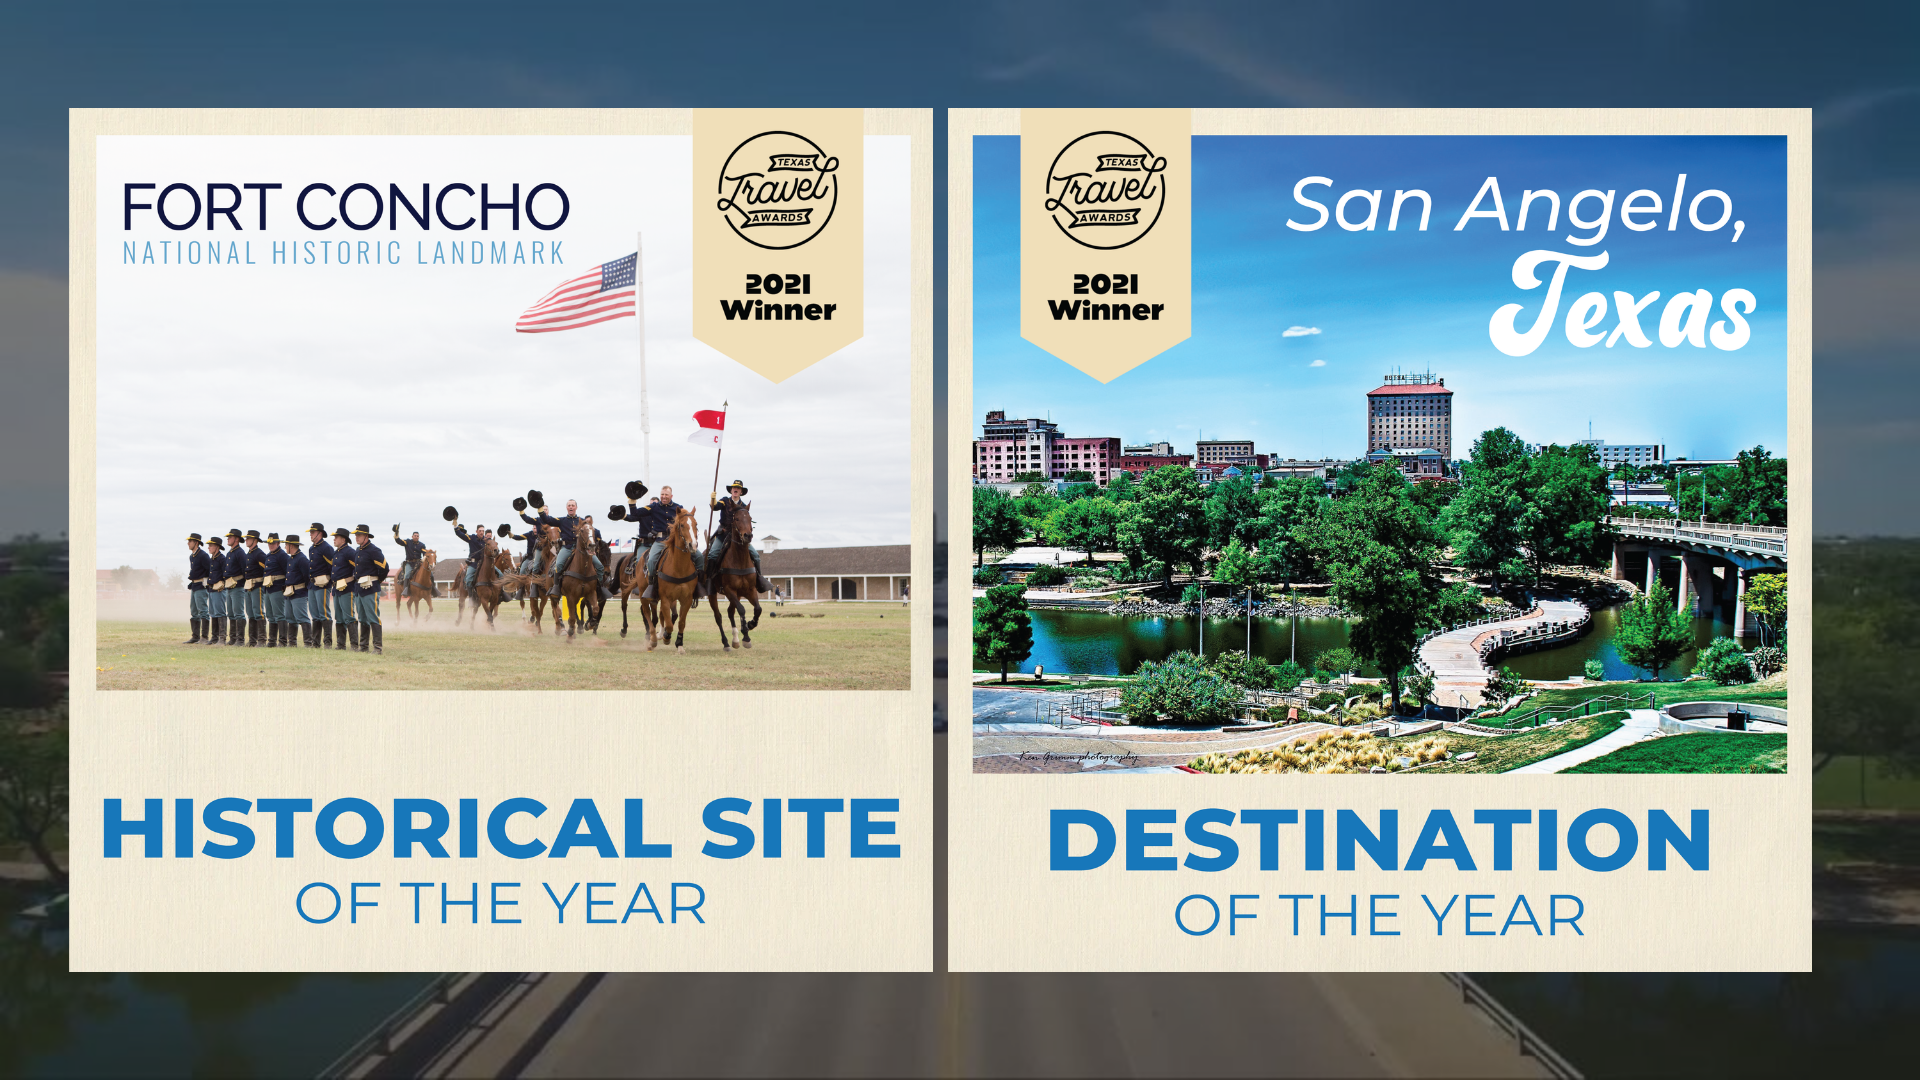 San Angelo awarded Destination of the Year and Fort Concho awarded Historic Site of the Year by Texas Travel